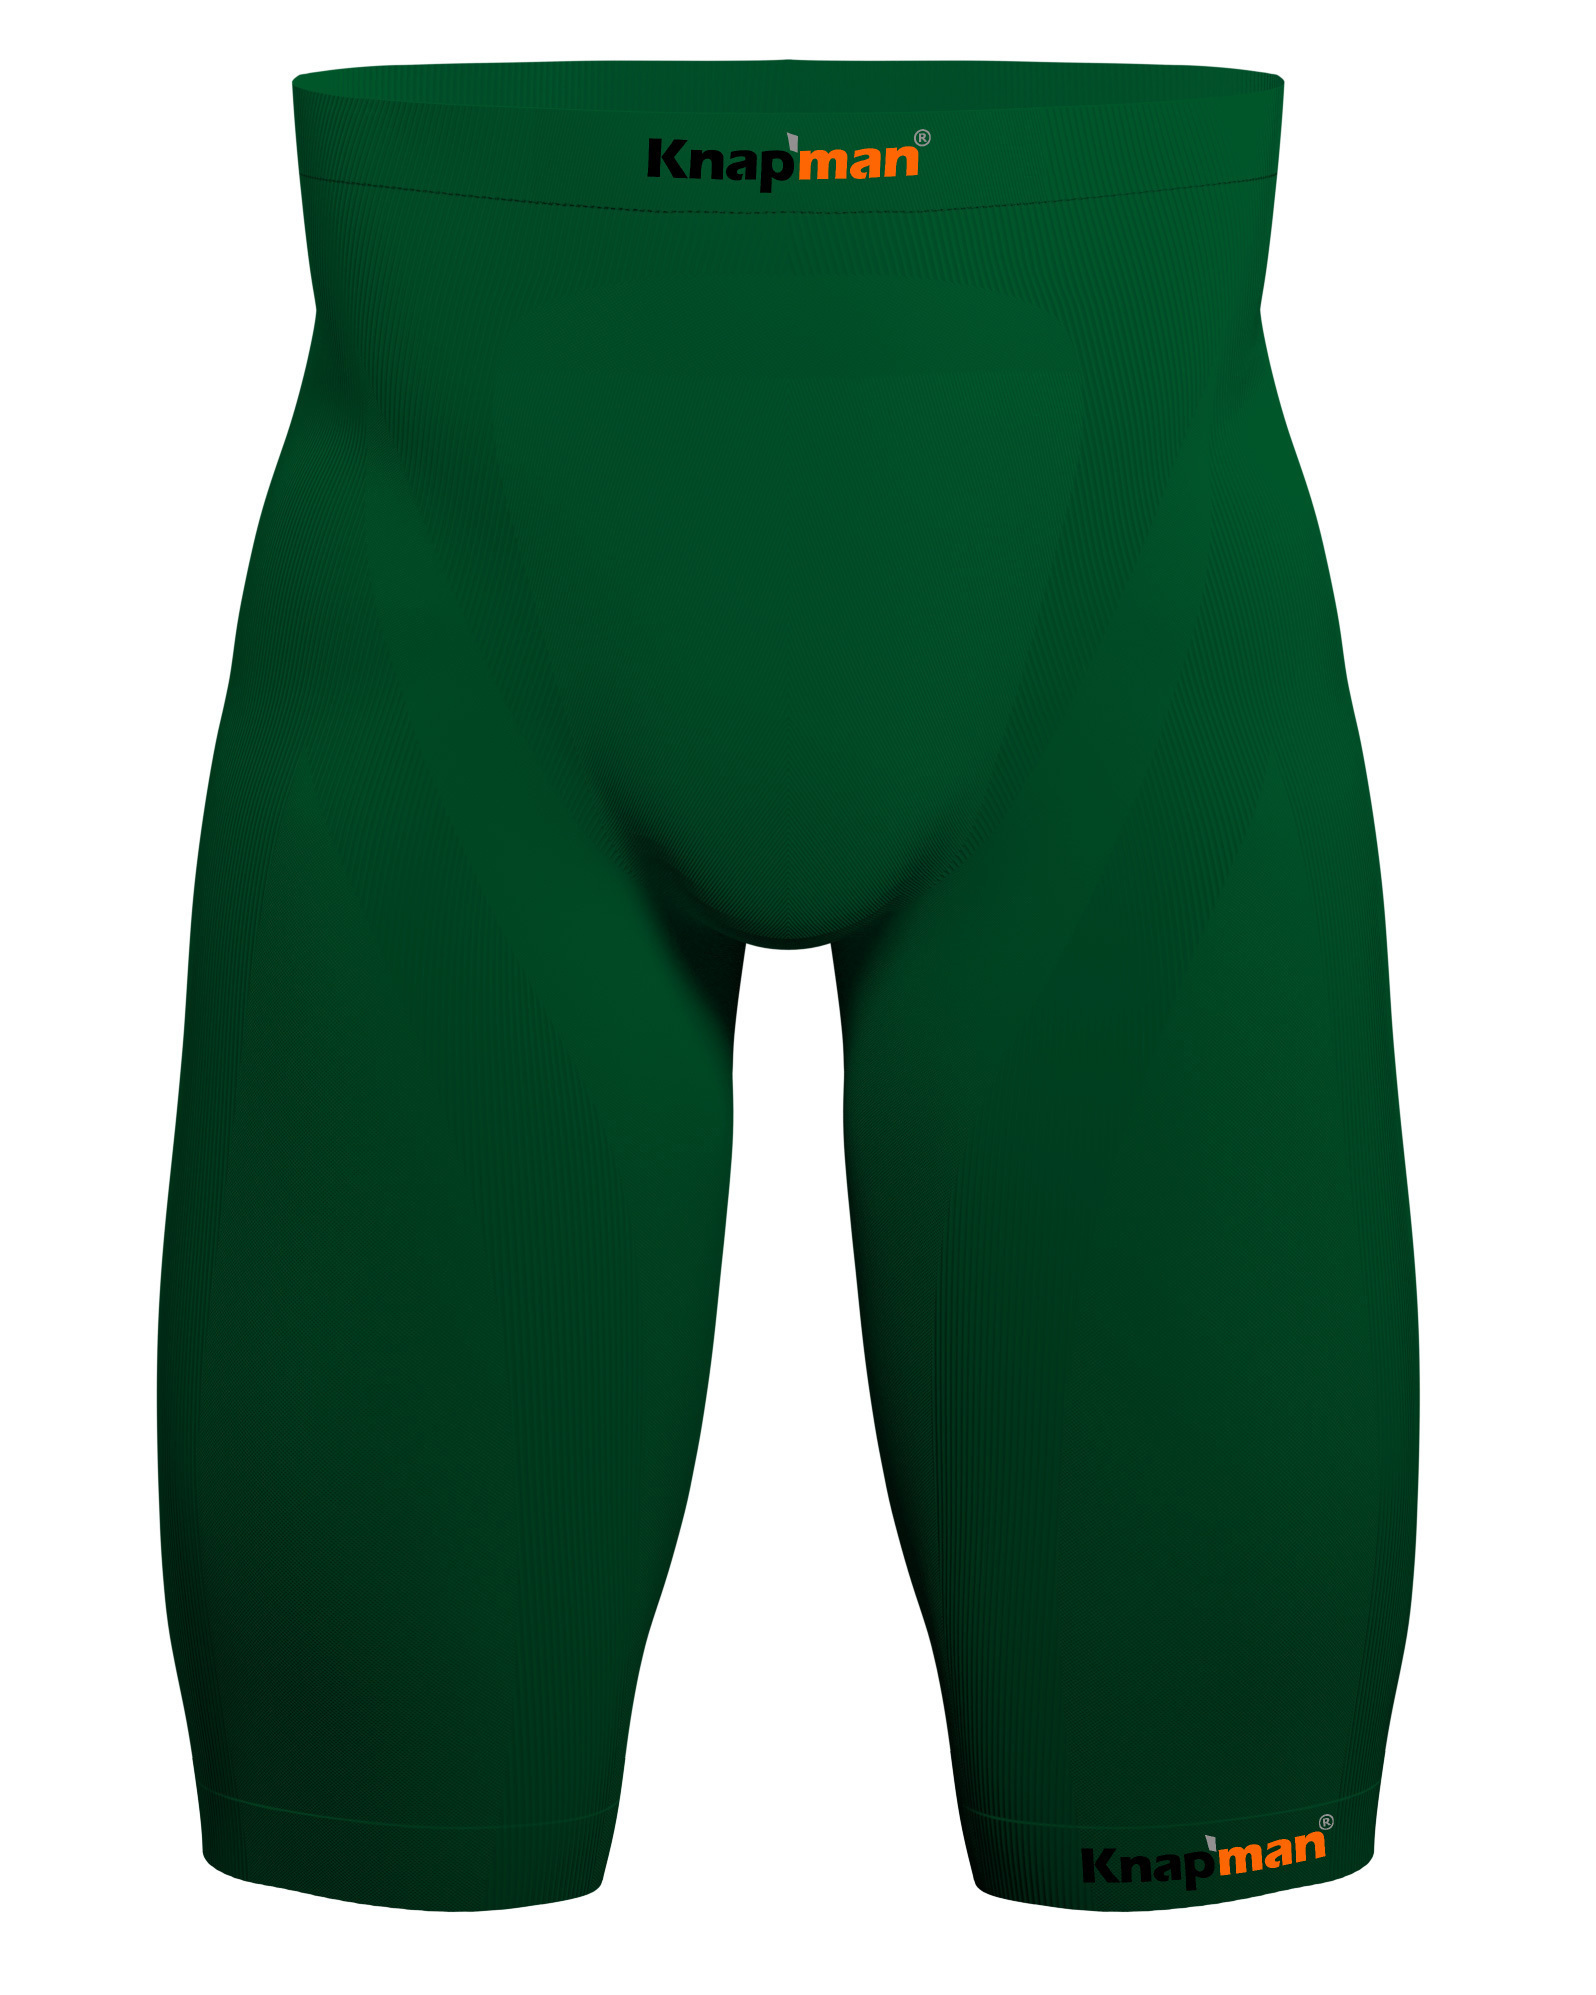 Knap'man Zoned Compression Short USP 45% green